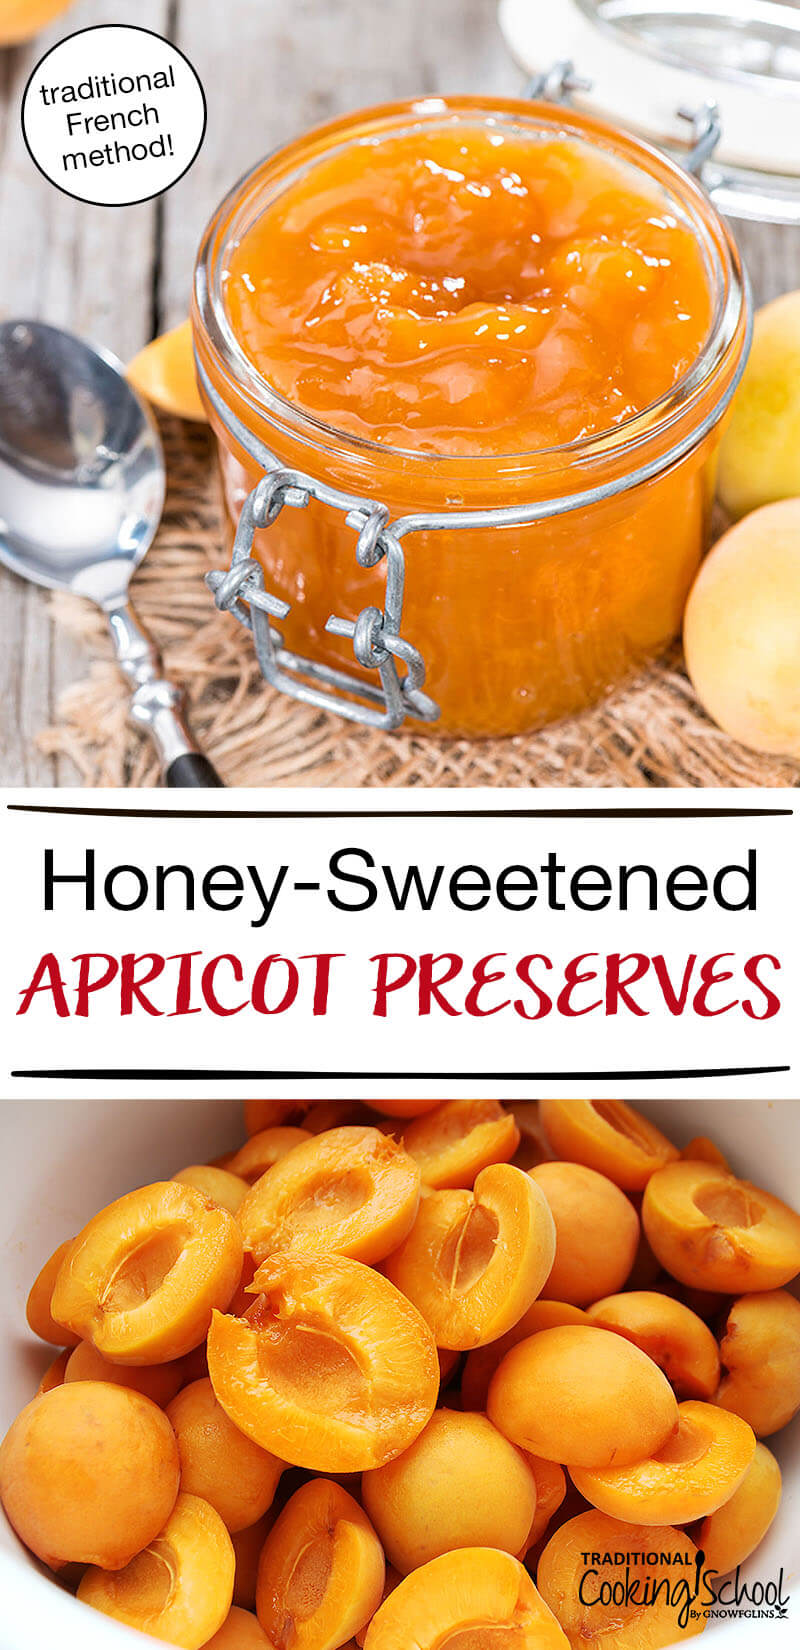 Heavenly Traditional French-Style Apricot Preserves | Summertime is for reveling in the heavenly flavors of ripe summer fruit, is it not? Based on the traditional French method of making apricot preserves and apricot butter, I look forward to making this recipe each summer. I hope you enjoy it as thoroughly and delightedly as I do. | TraditionalCookingSchool.com